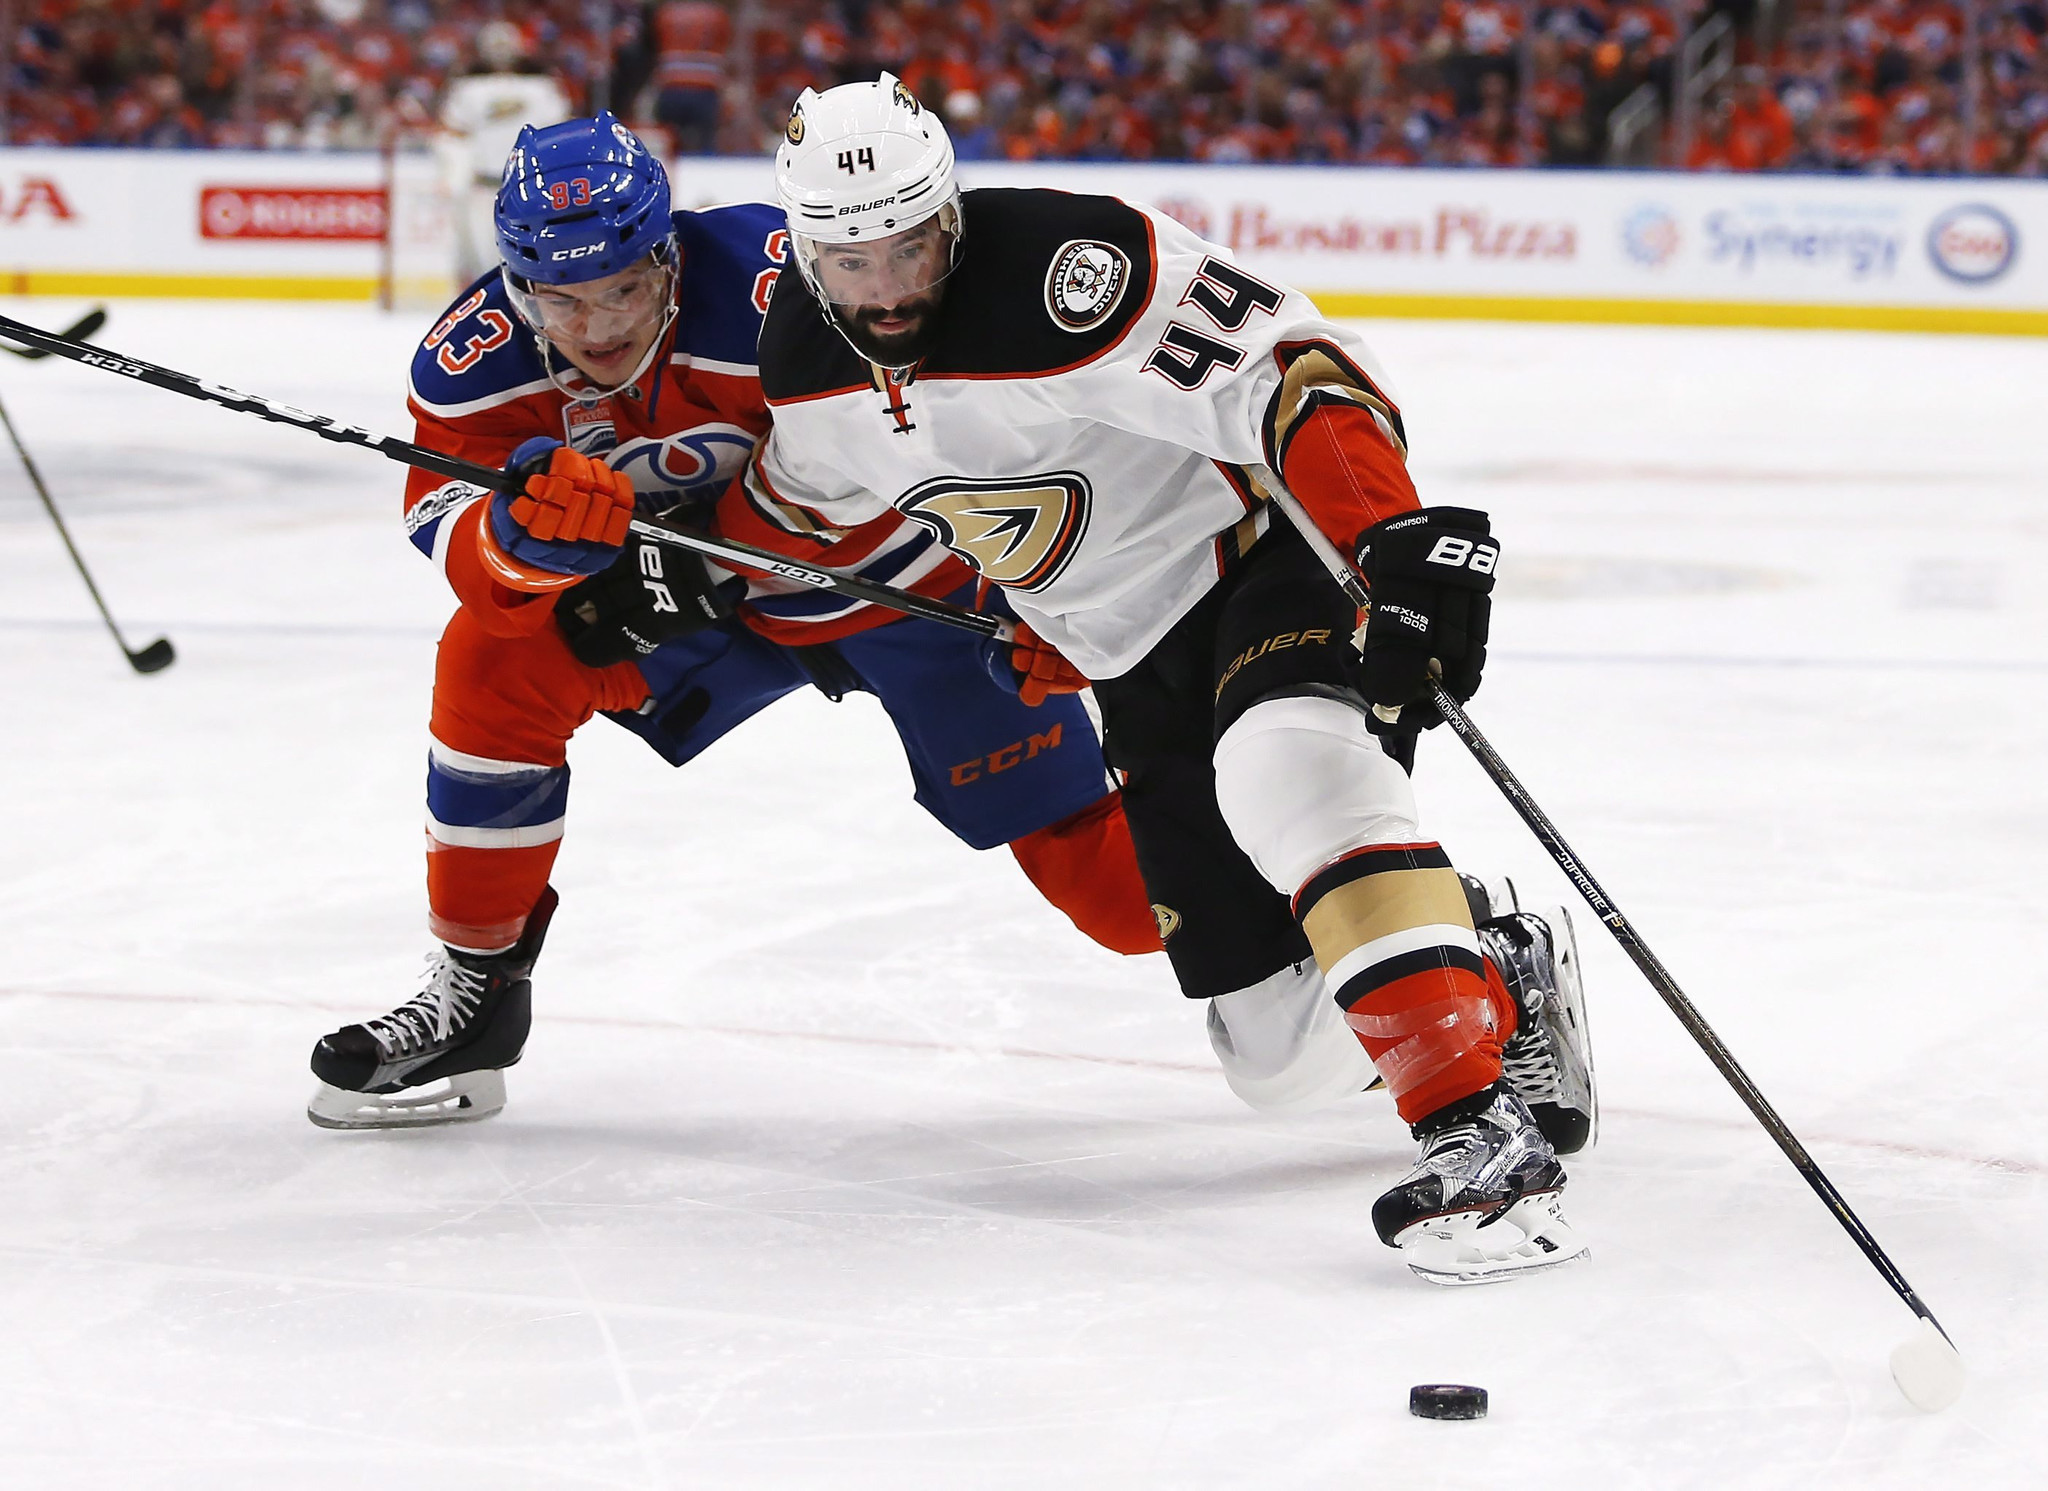 edmonton oilers lose to anaheim ducks with ryan getzlaf